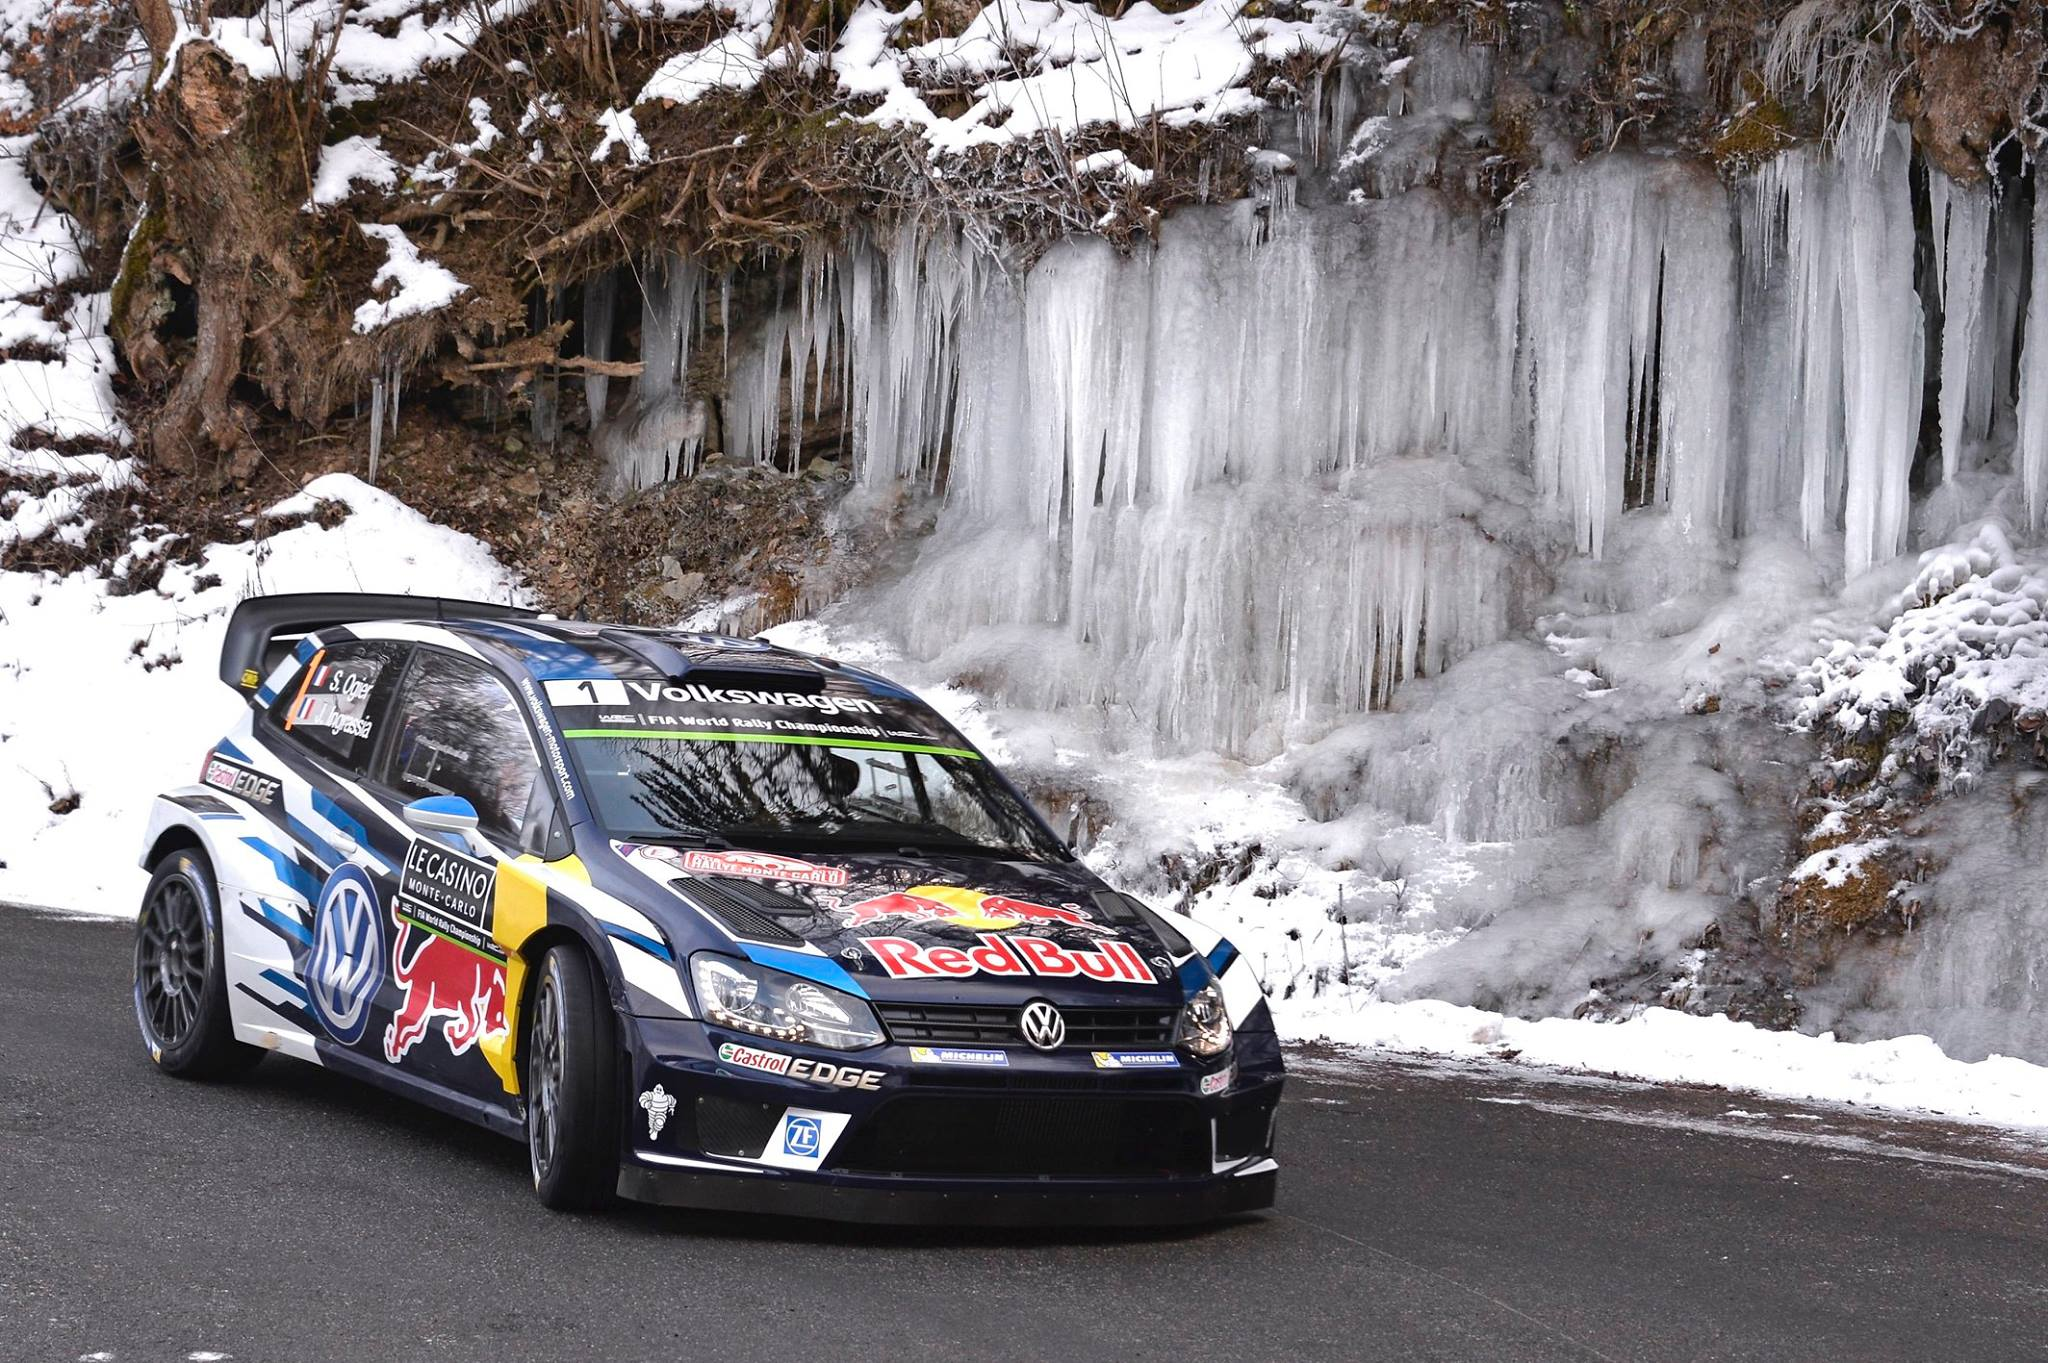 wrc monte carlo 4 me victoire sur ses terres pour ogier les voitures. Black Bedroom Furniture Sets. Home Design Ideas